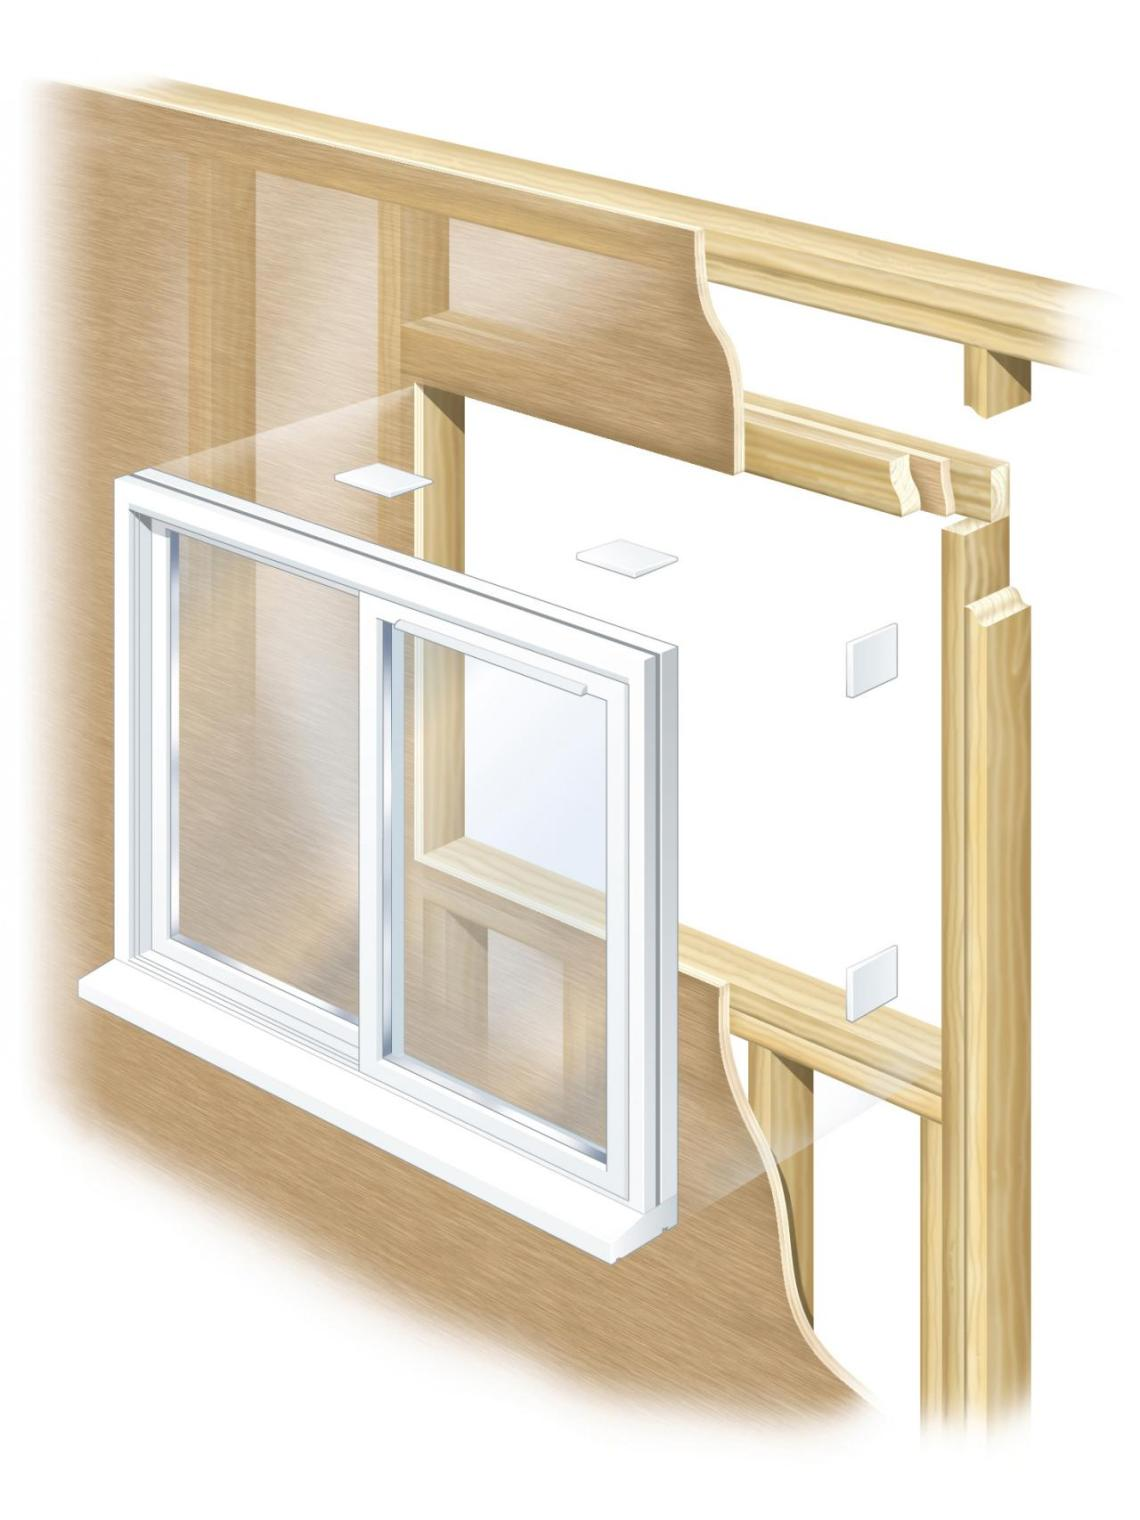 Image Result For How To Install A Ba T Window In A Block Wall